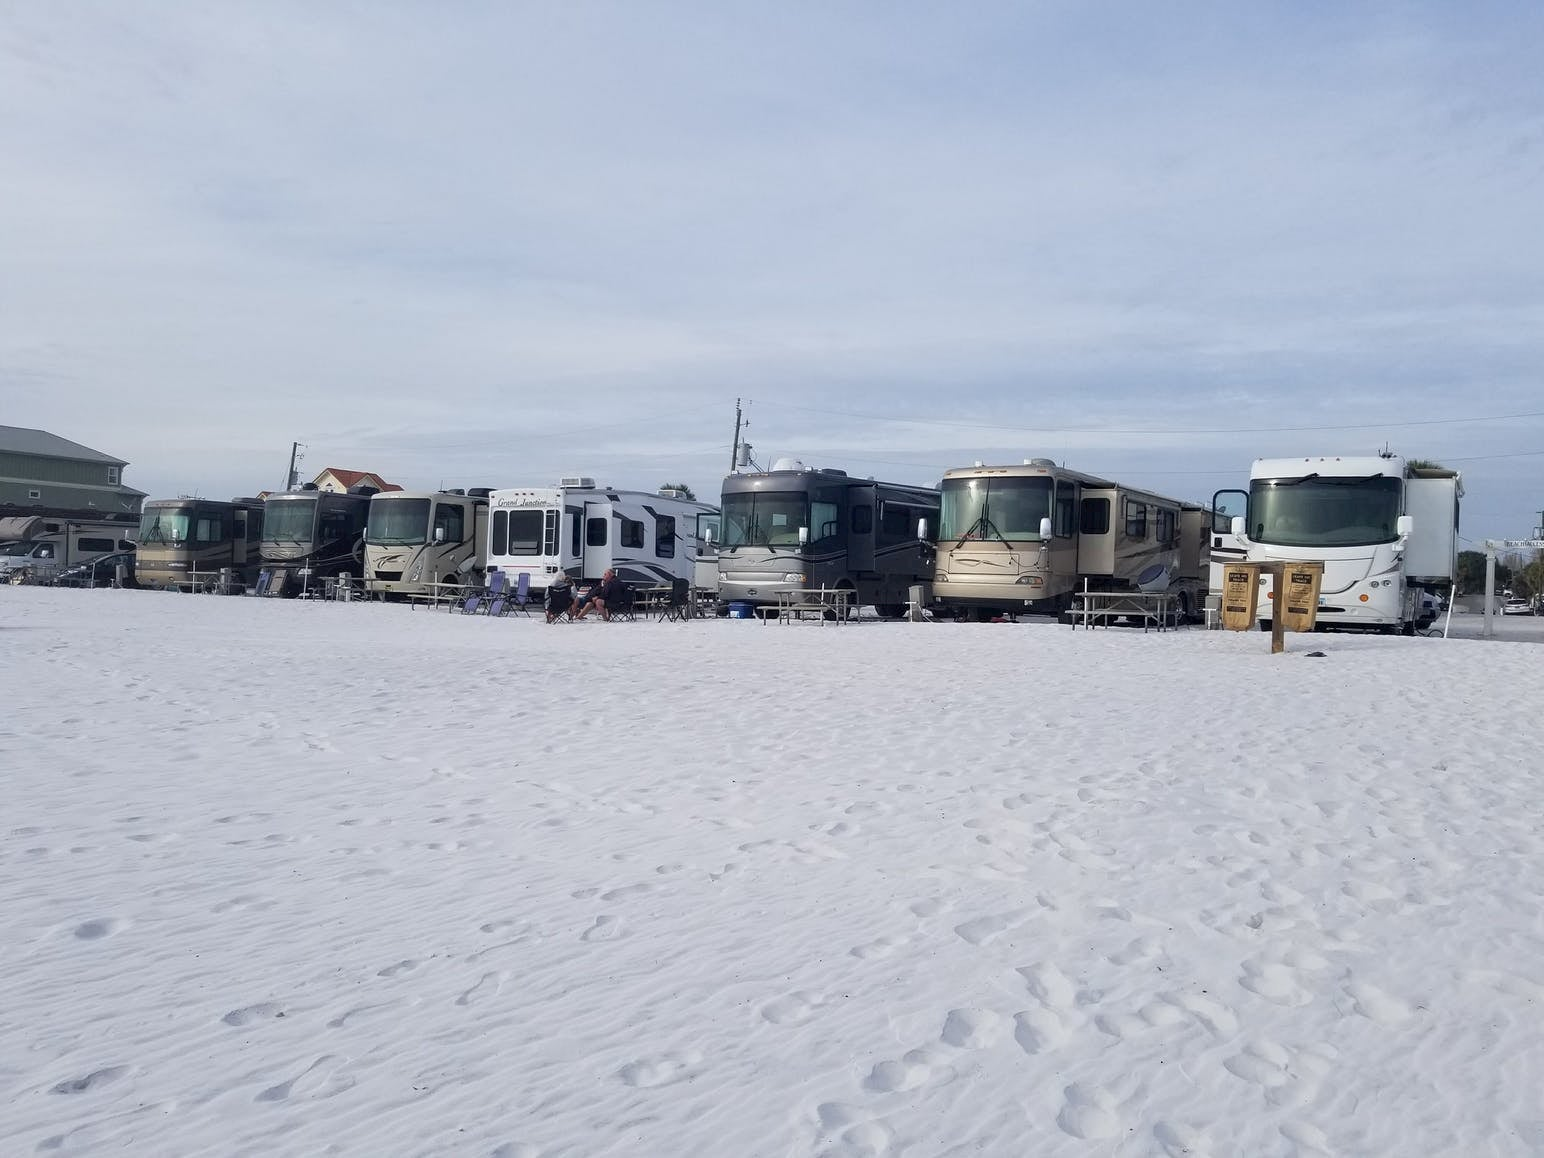 RVs lined up on white sand beach.